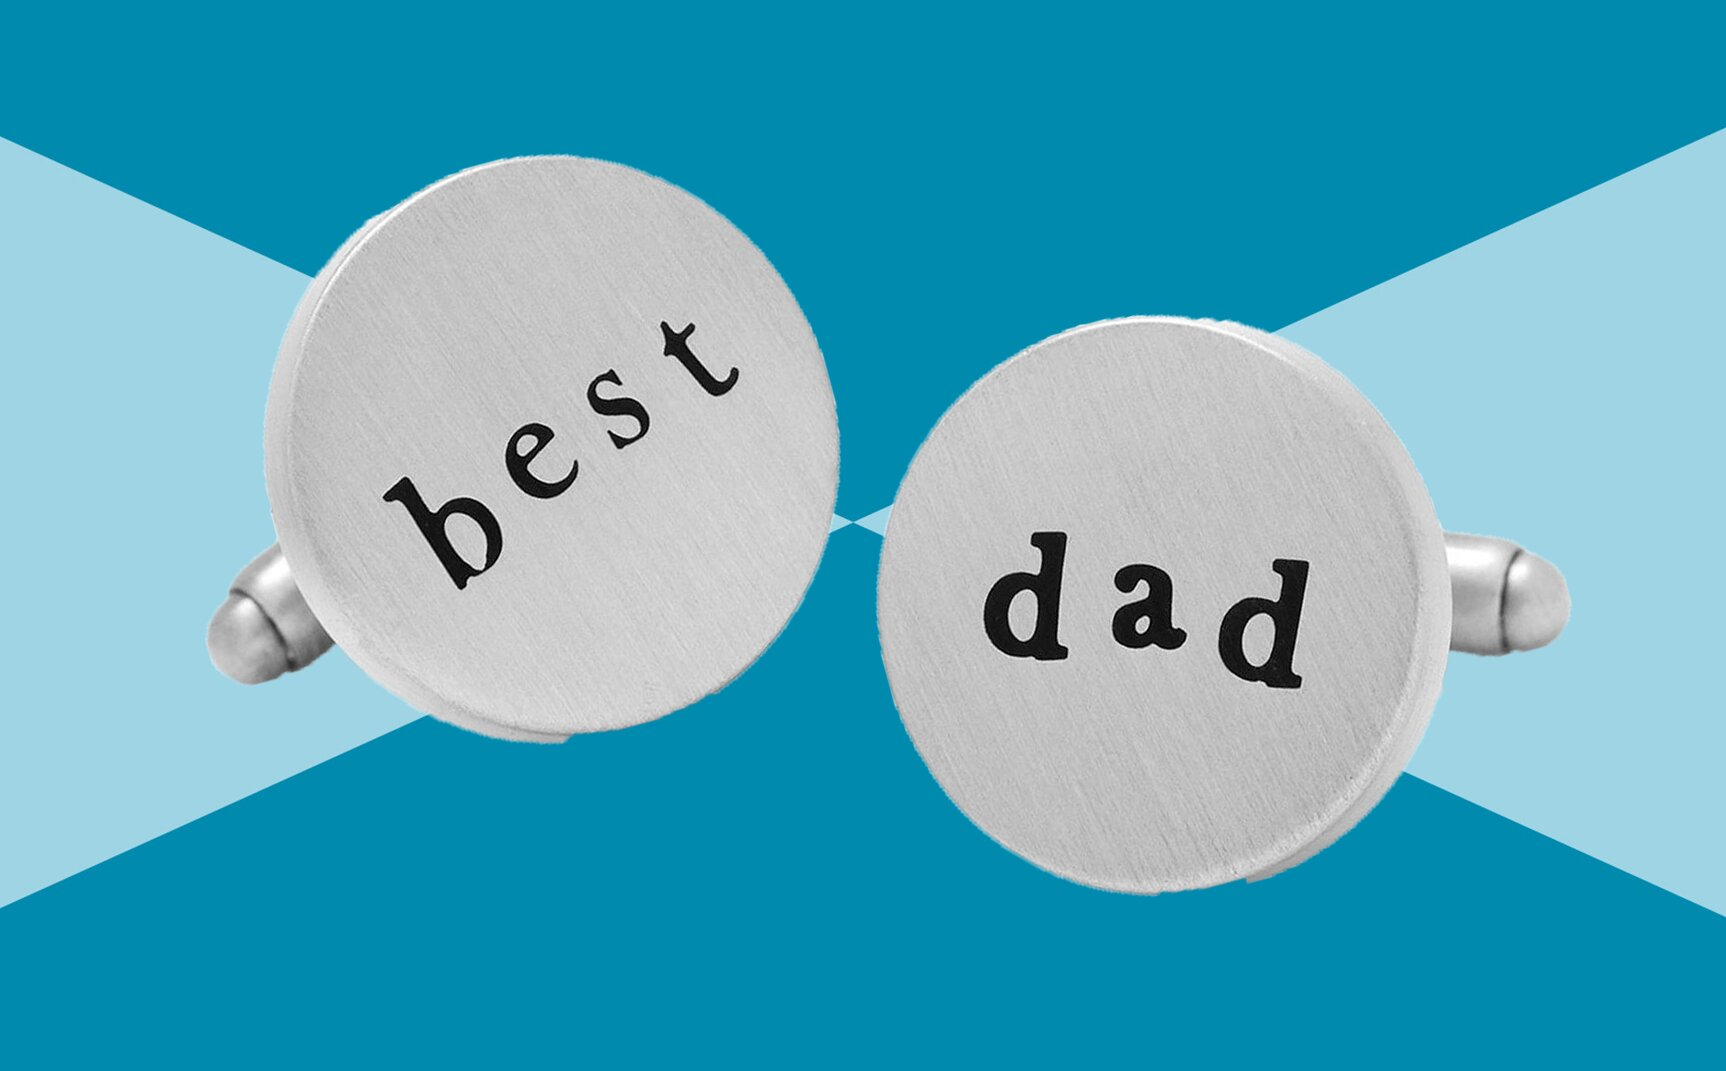 Cool Christmas Gift For Dad.The Best Christmas Gifts For Dad In 2019